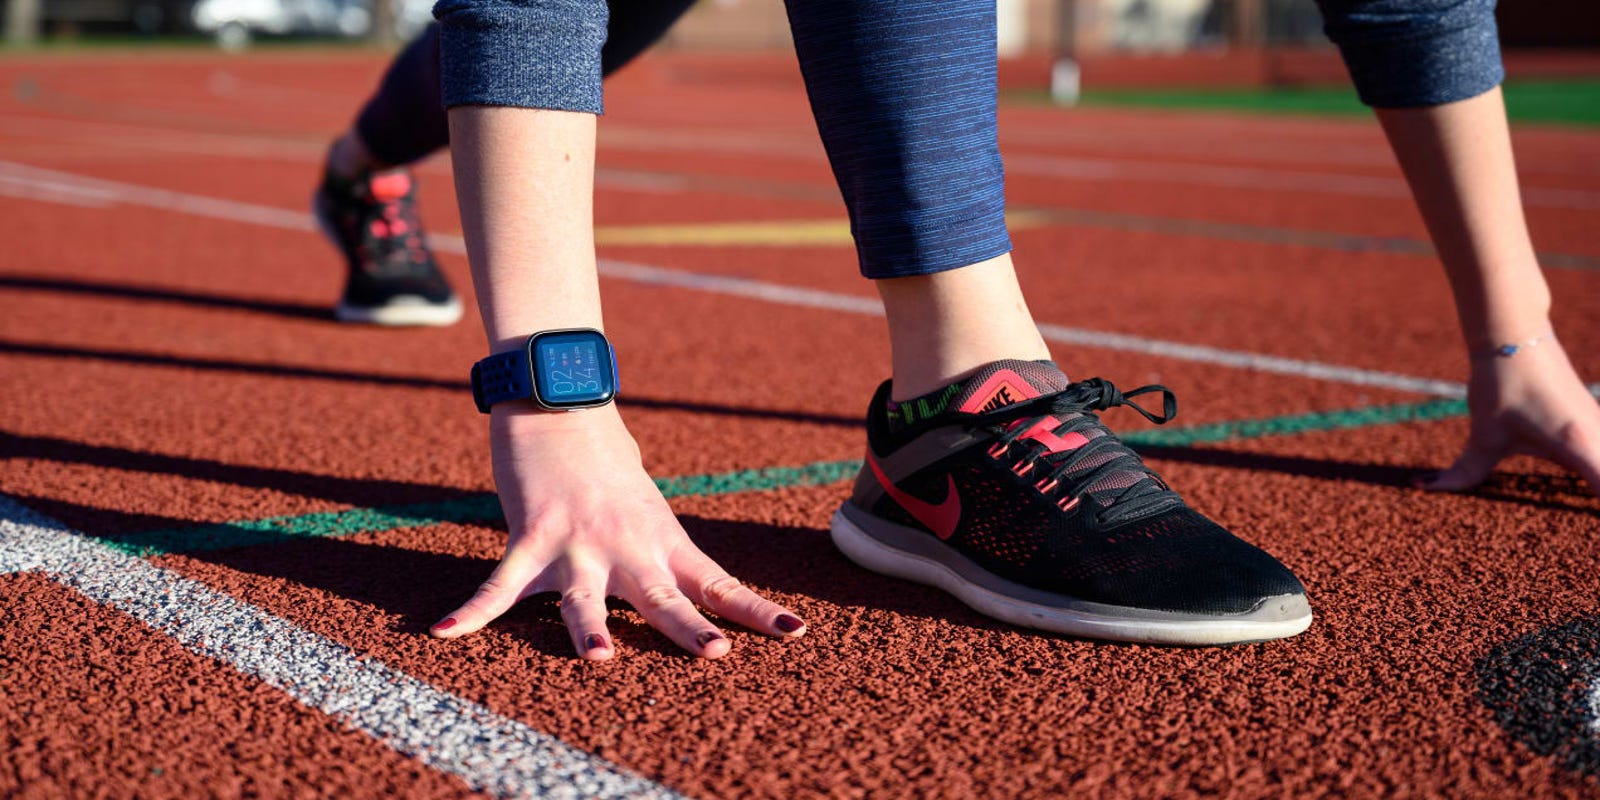 Do you really need to walk 10,000 steps a day? Experts say there's a better goal